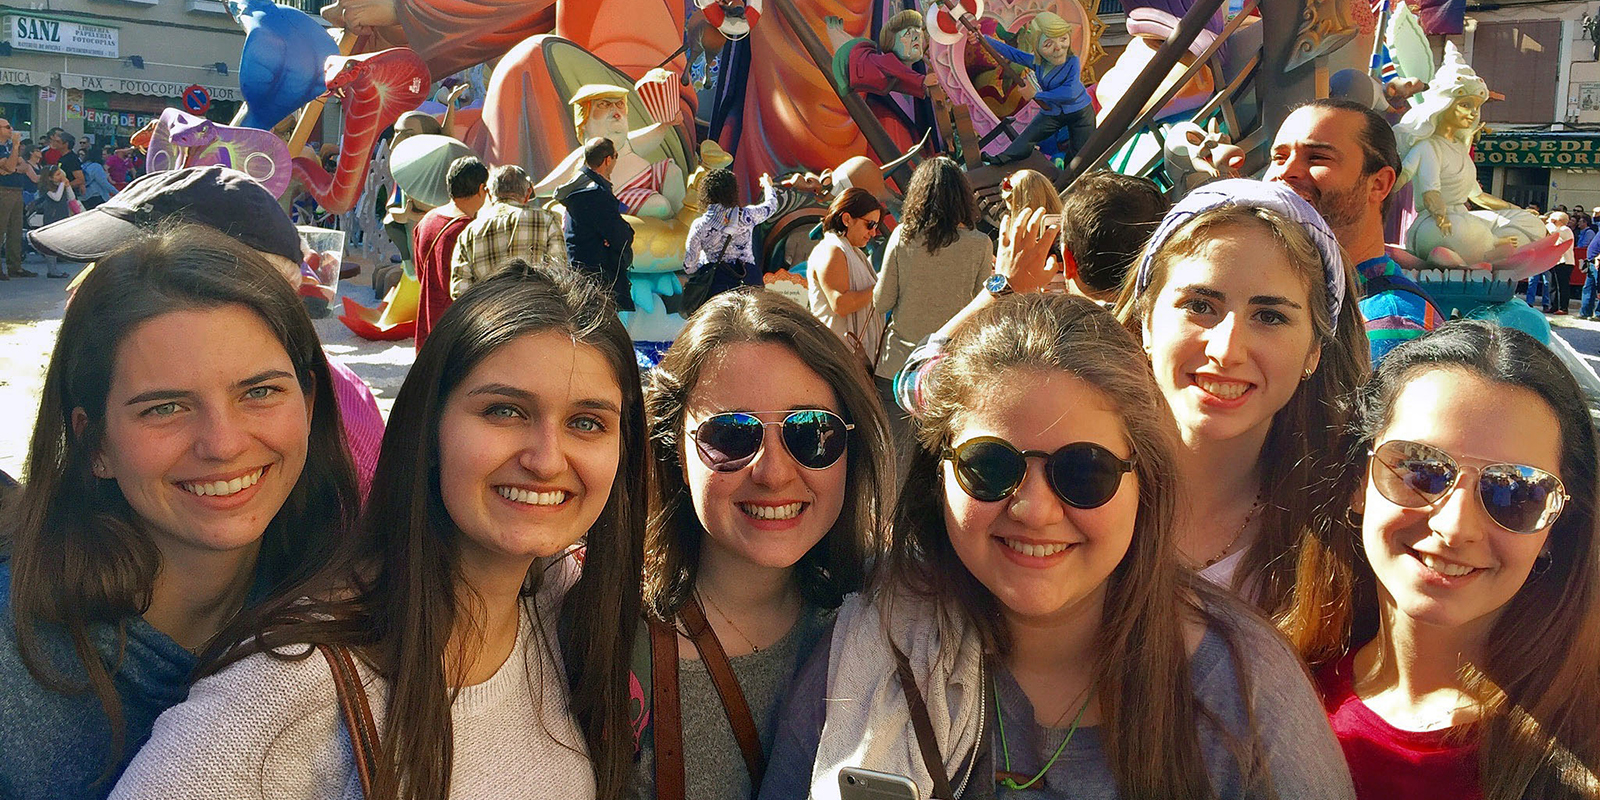 During a stint studying abroad at USD's Madrid Center, students enjoyed the Las Fallas de Valencia festival. At far left is Tess Robeson '18 and Melinda Sevilla '18, accompanied by four Spanish students from Comillas, Spain.